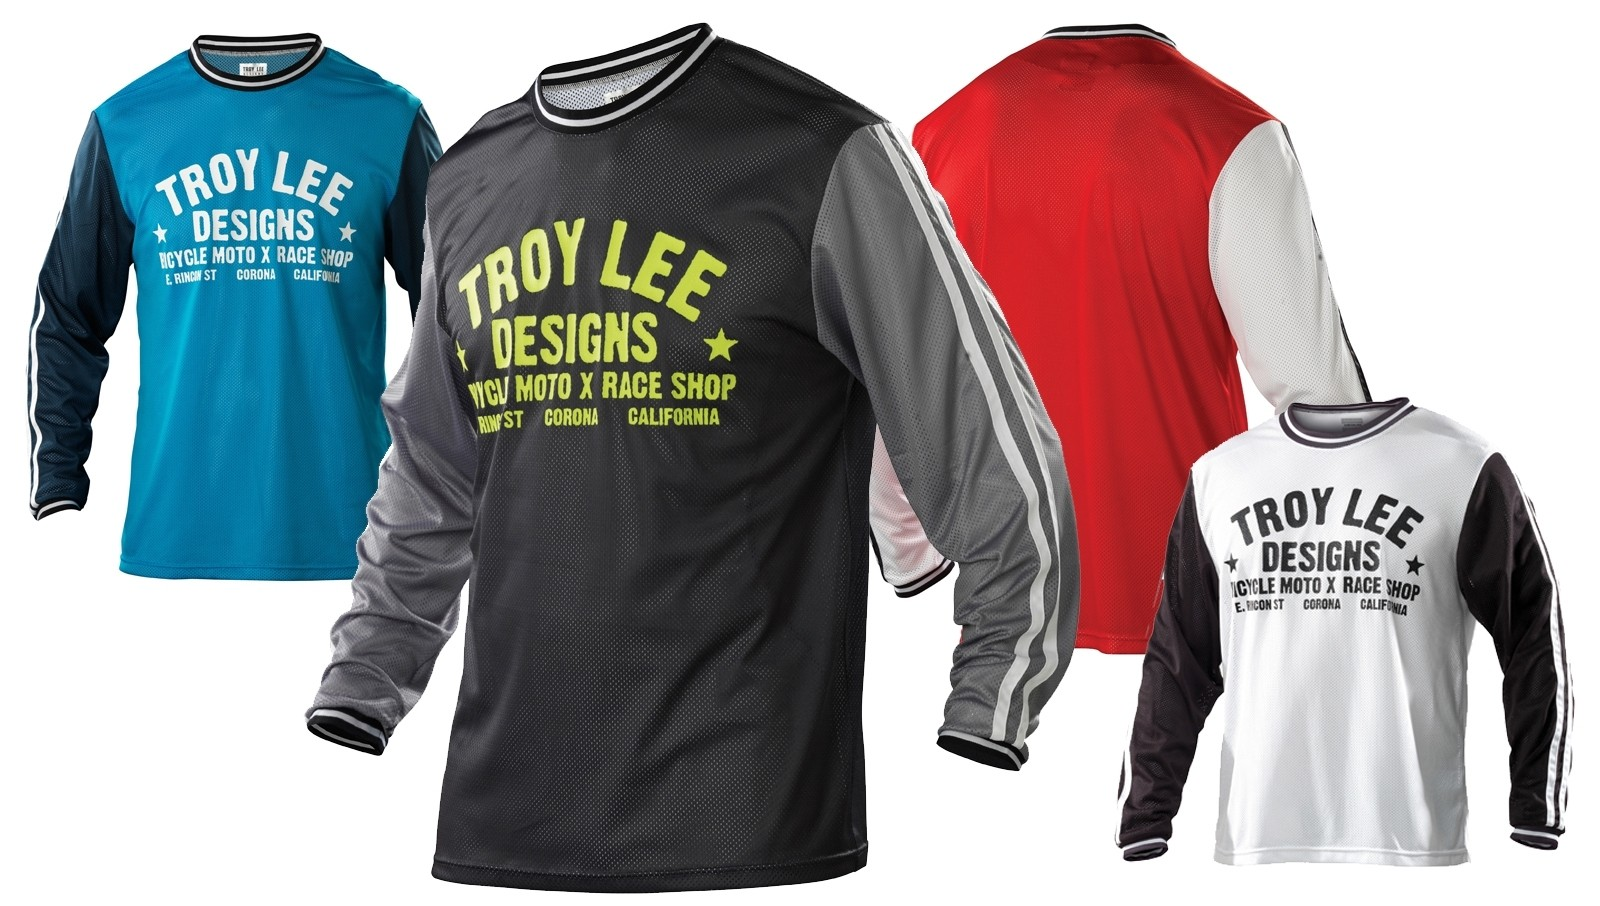 First Look  2015 Troy Lee Designs Apparel - Mountain Bikes Feature ... bf0d49b28